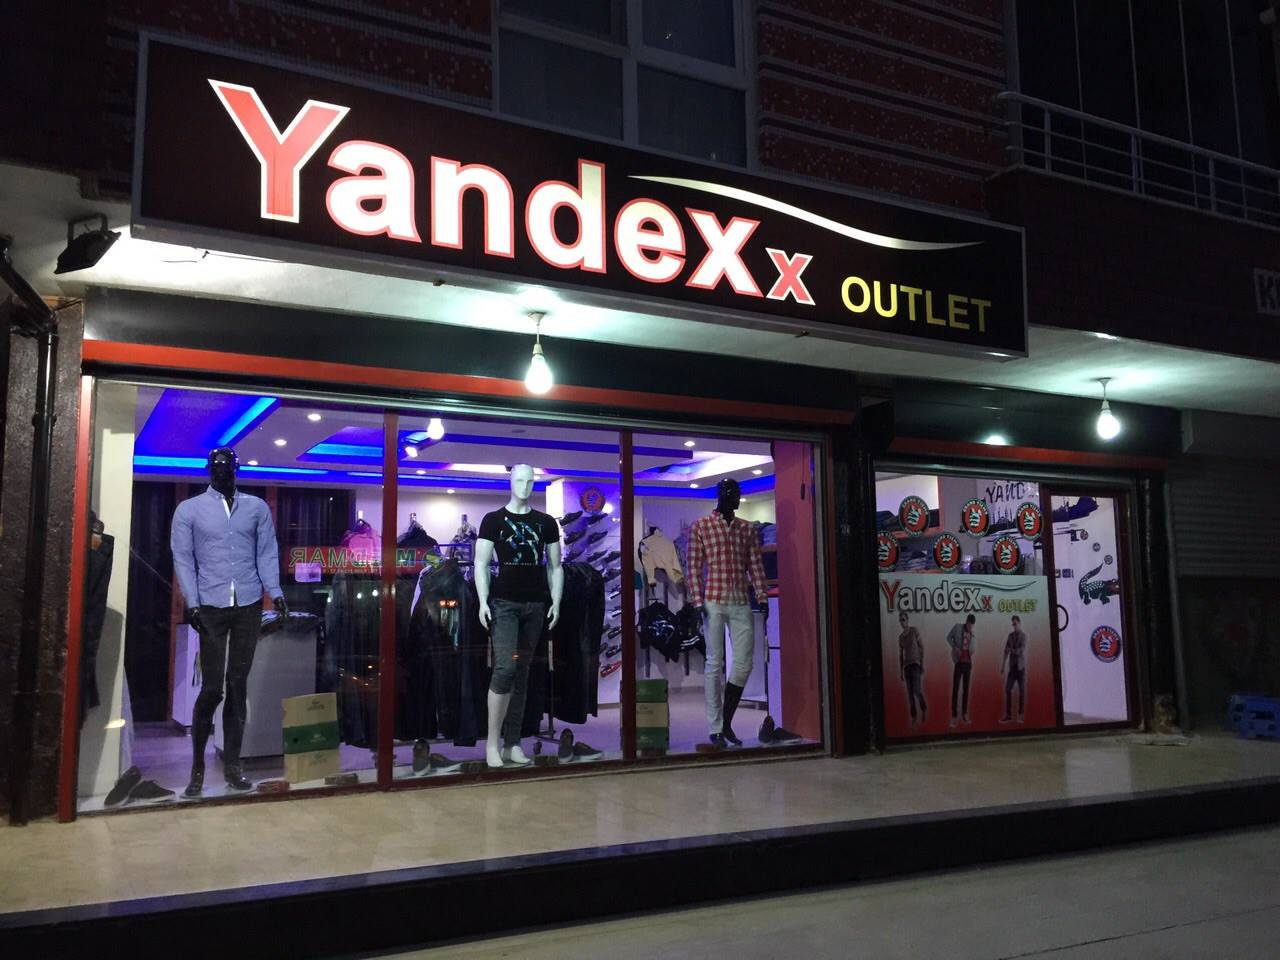 Yandex Outlet